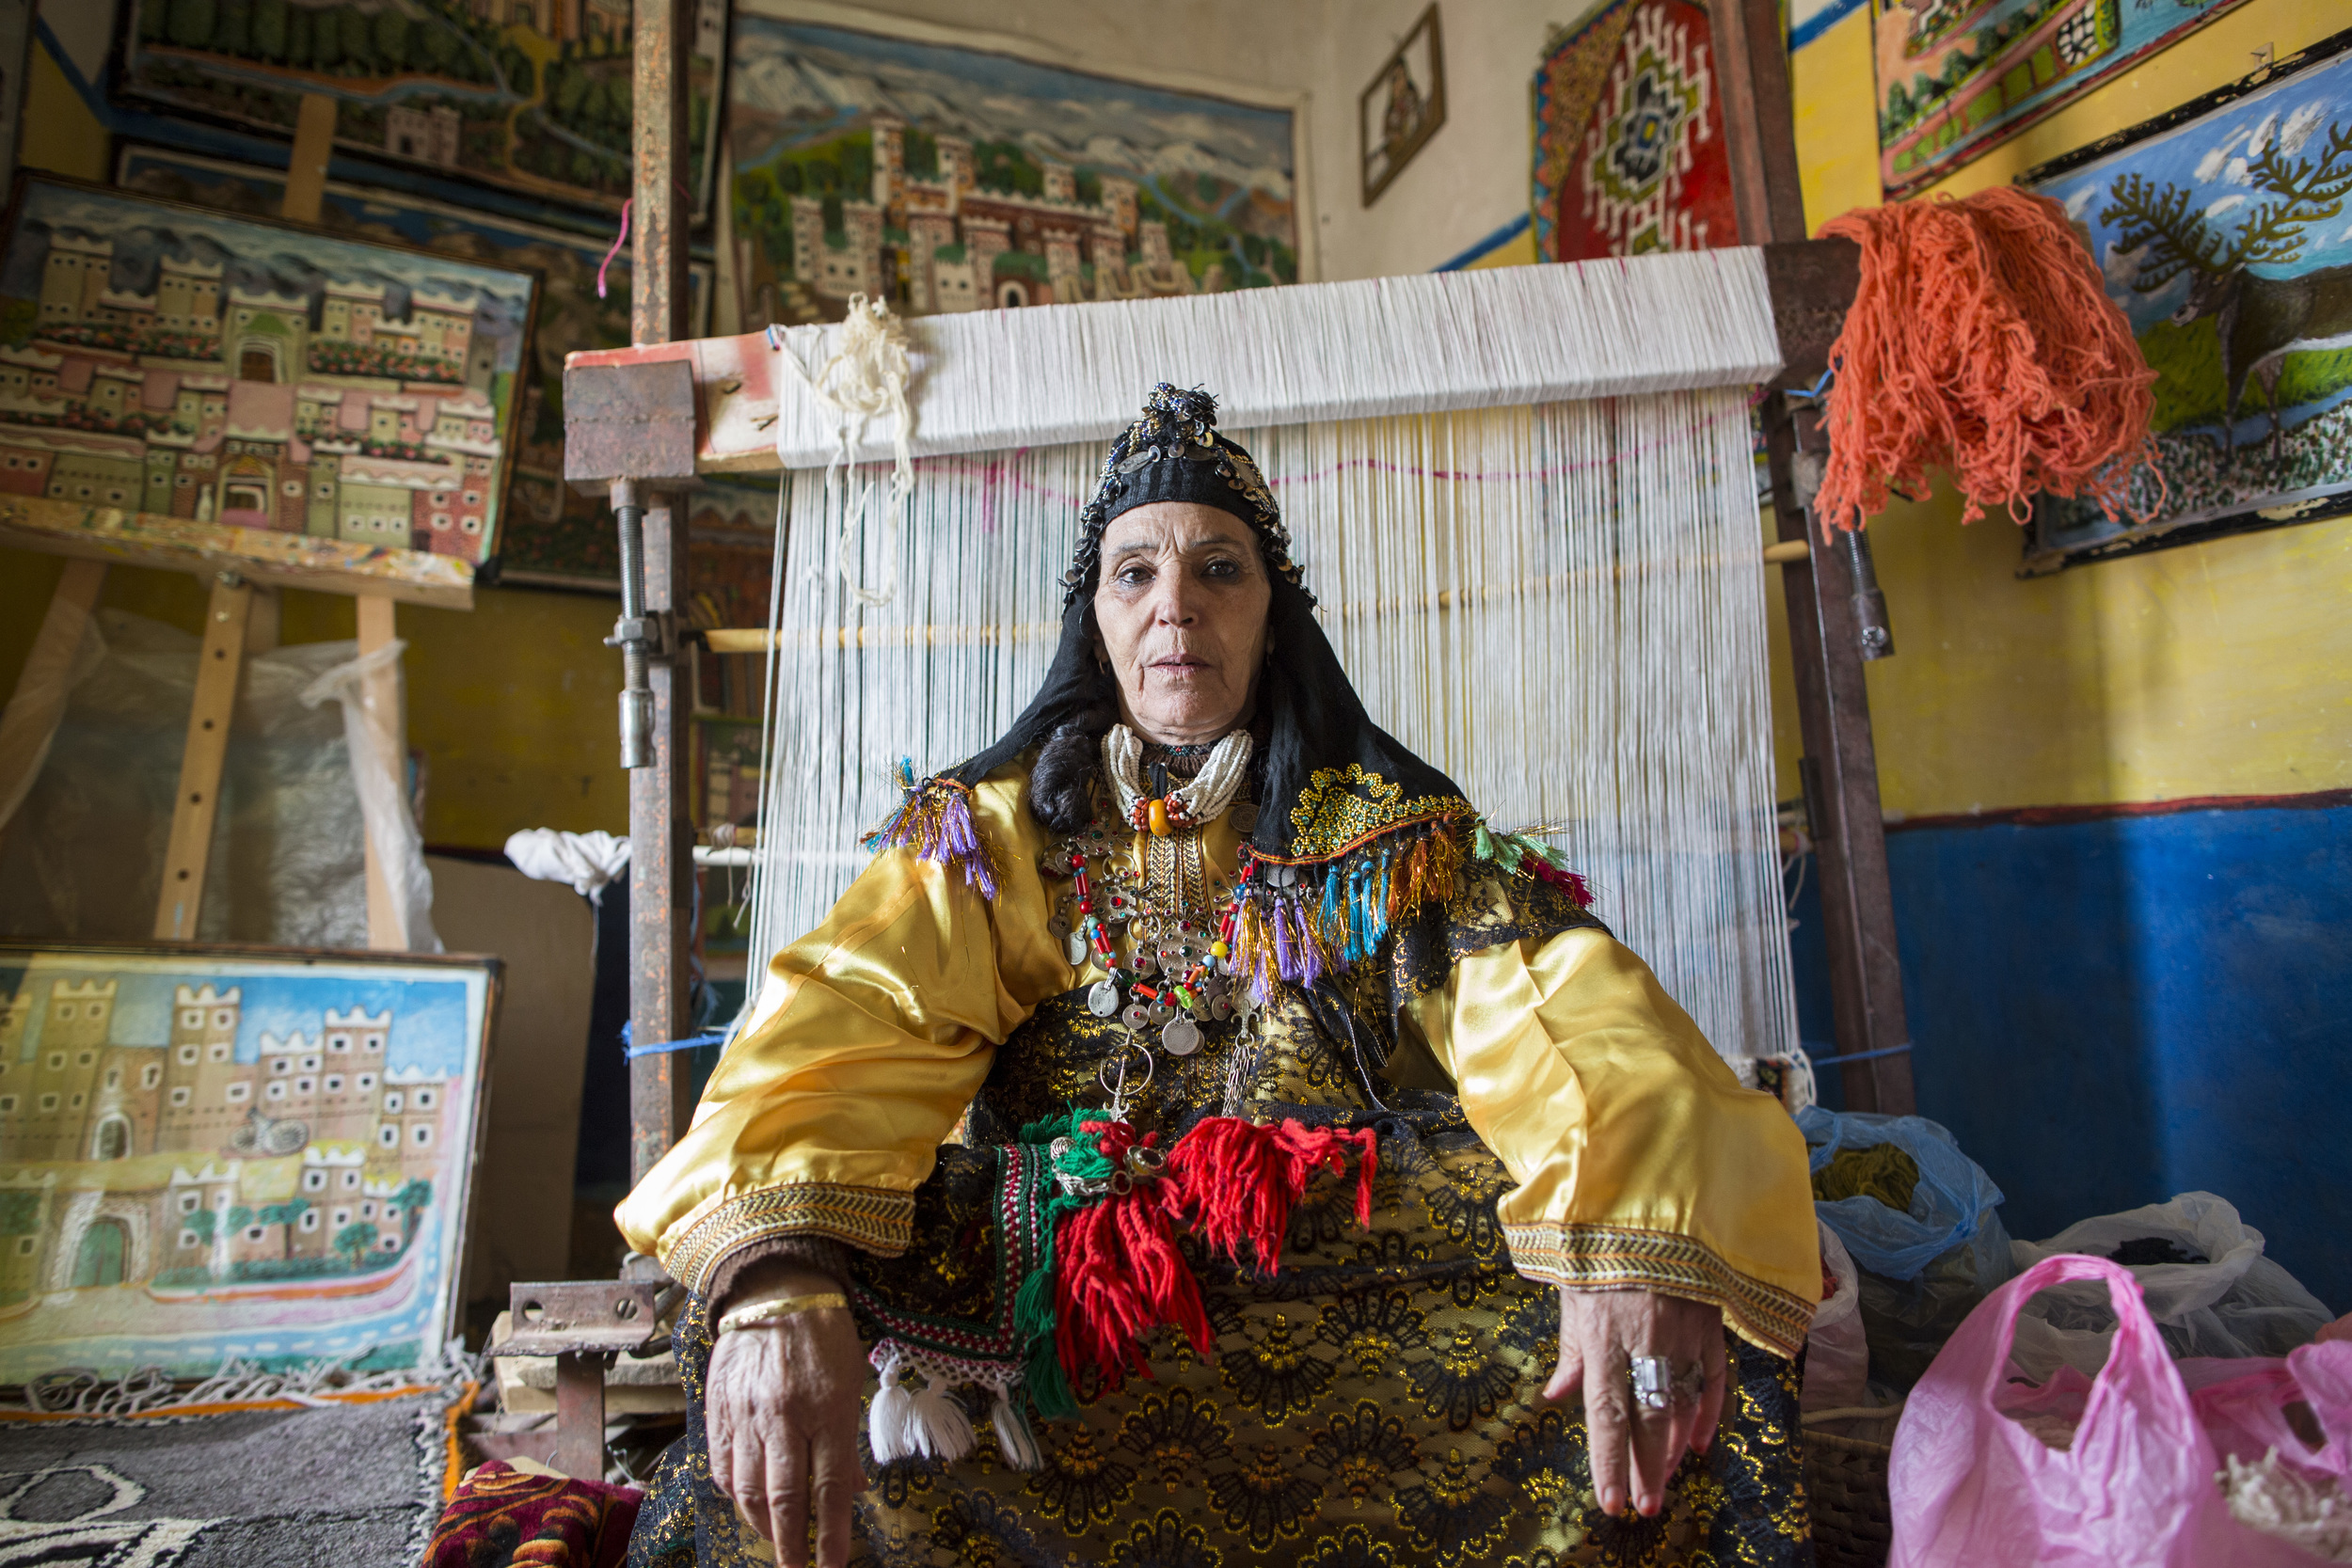 """Fadma Aid Hemam, 63, in her traditional clothing, sits in her home studio surrounded by her artwork and carpets, """"Amazigh is my identity. I wouldn't change that for anything in the world."""""""